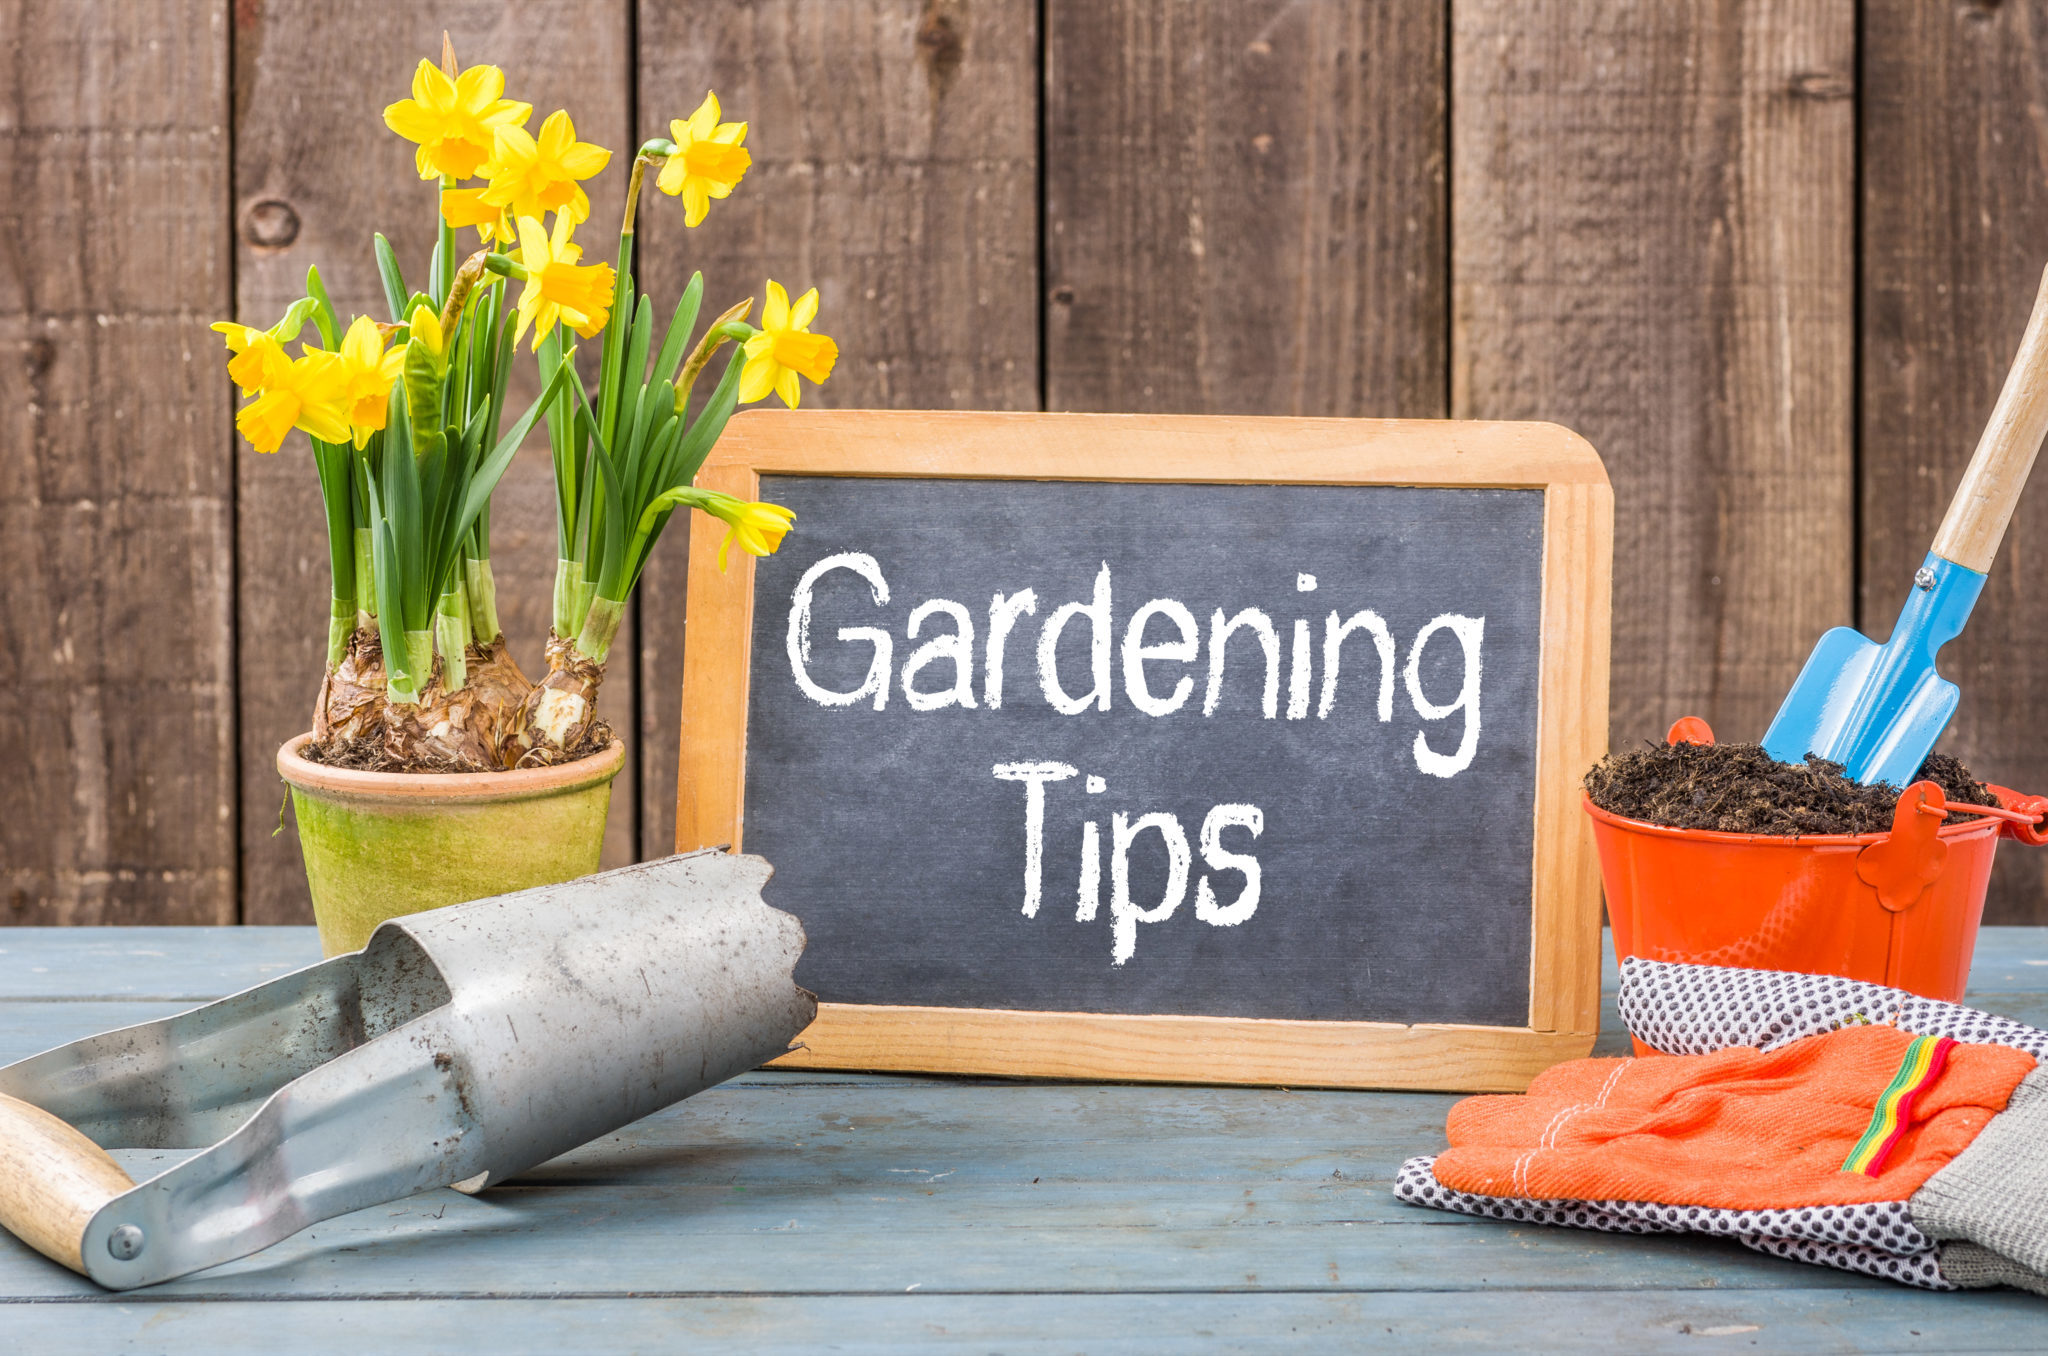 revampo.ca/gardening tips and ideas